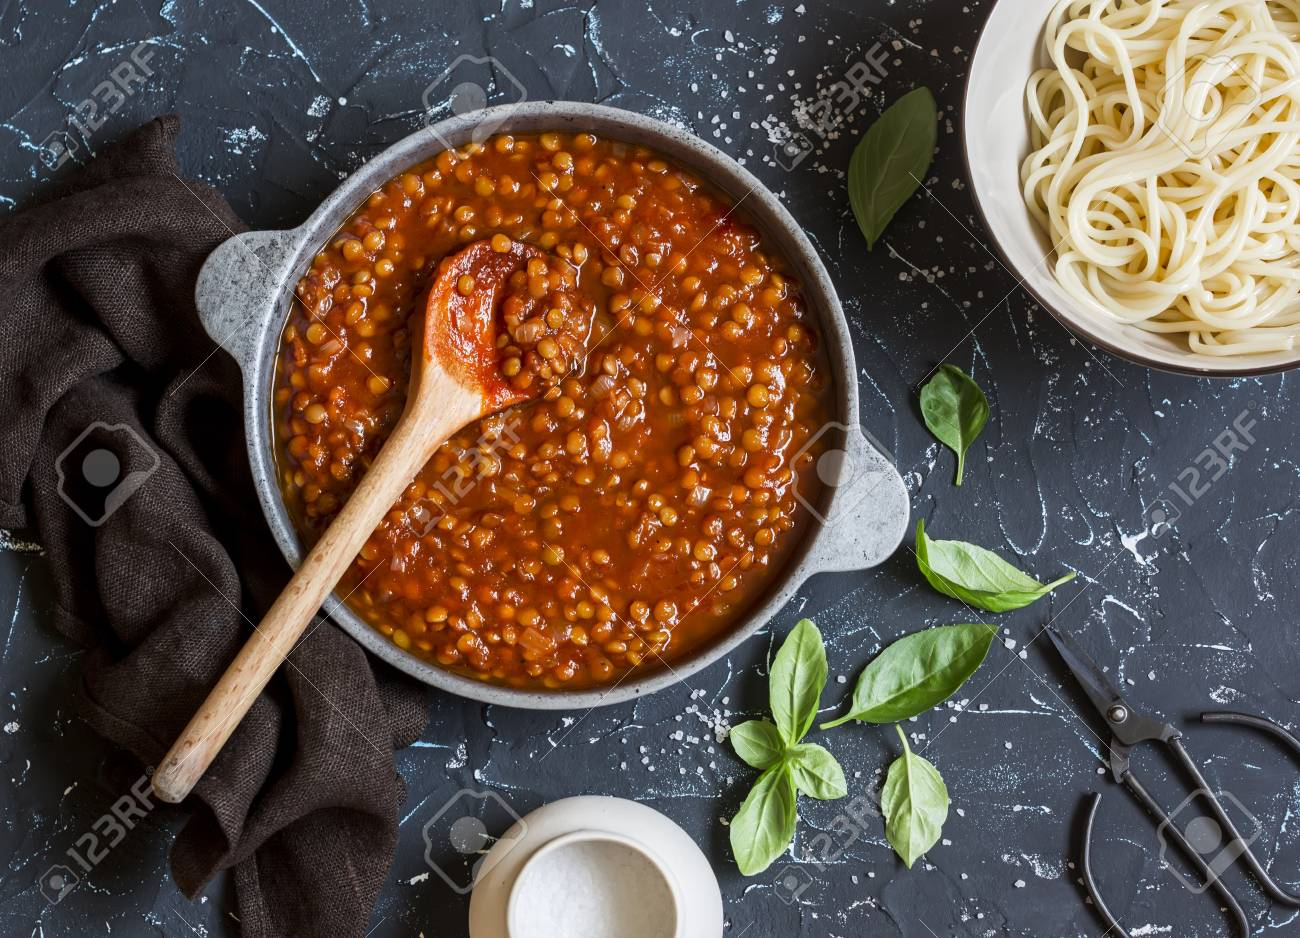 Vegetarian lentil bolognese sauce in a frying pan on a dark background. - 59762775